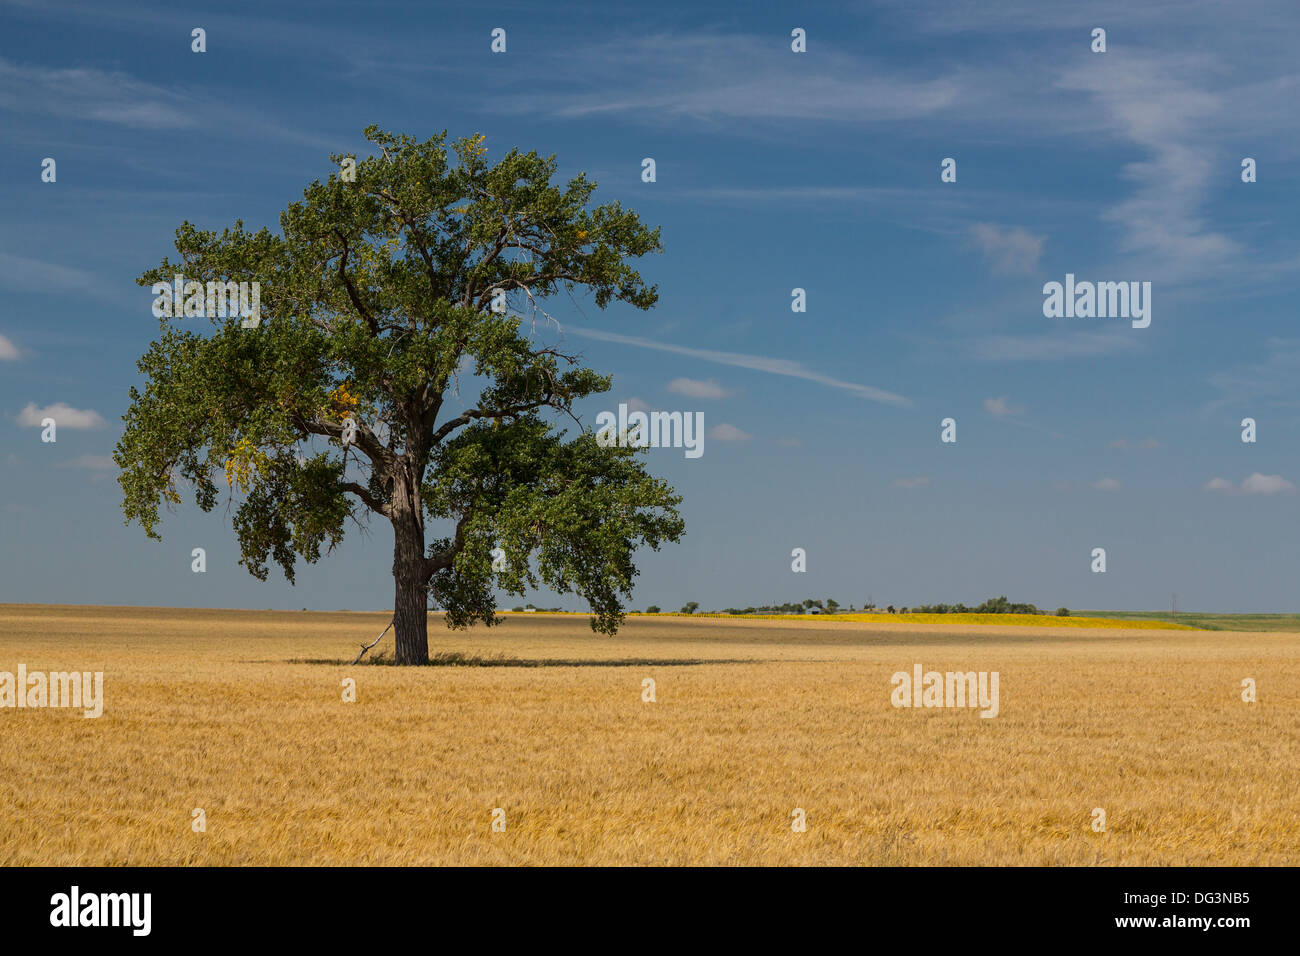 A ripe grain field and lone tree near Linton, North Dakota, USA. - Stock Image